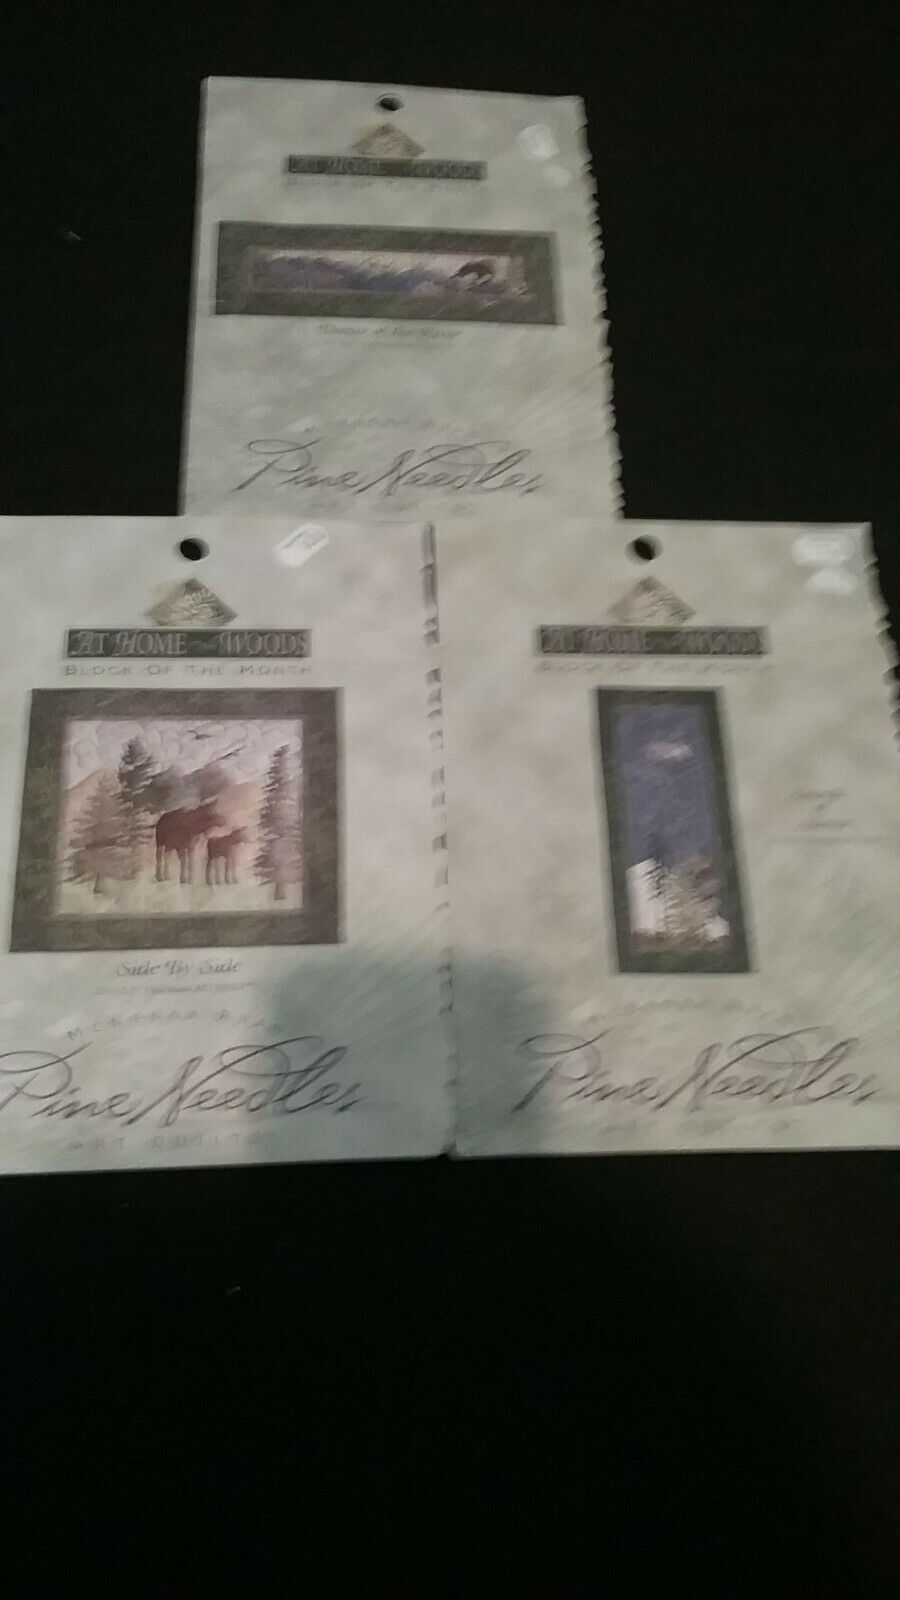 PINE NEEDLES ART QUILTS, AT HOME IN THE WOODS, BLOCK OF THE MONTH. LOT OF 3 PATT - $12.00